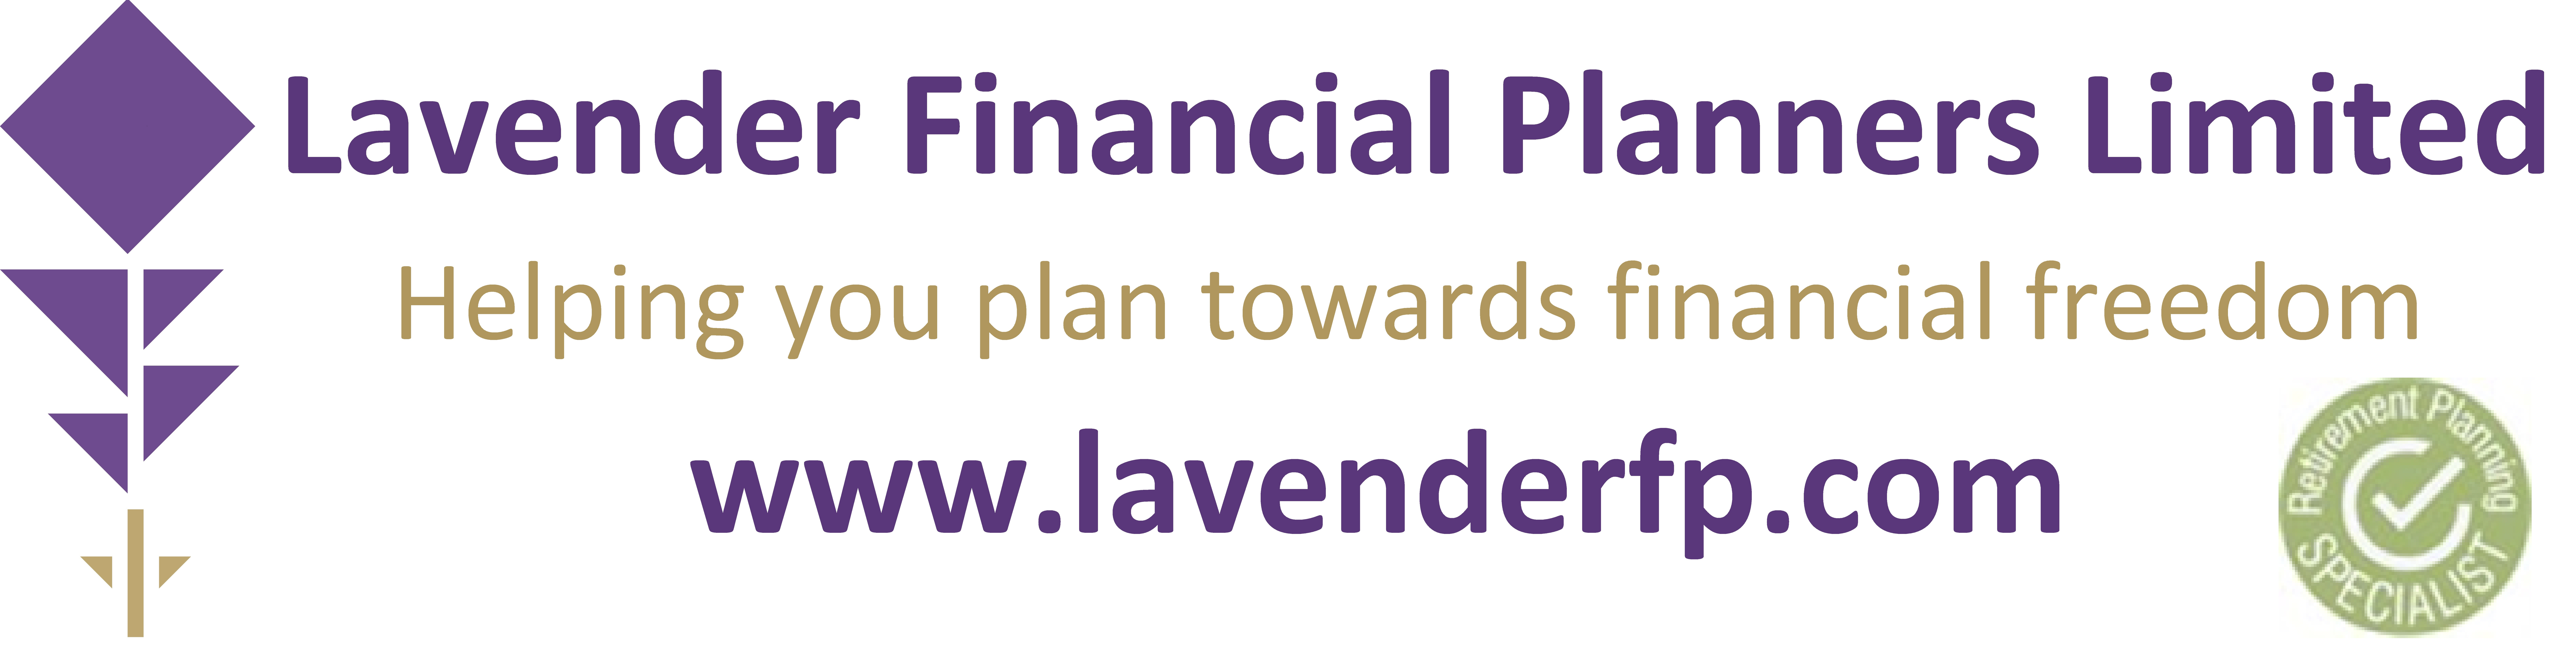 Lavender Financial Planners Limited